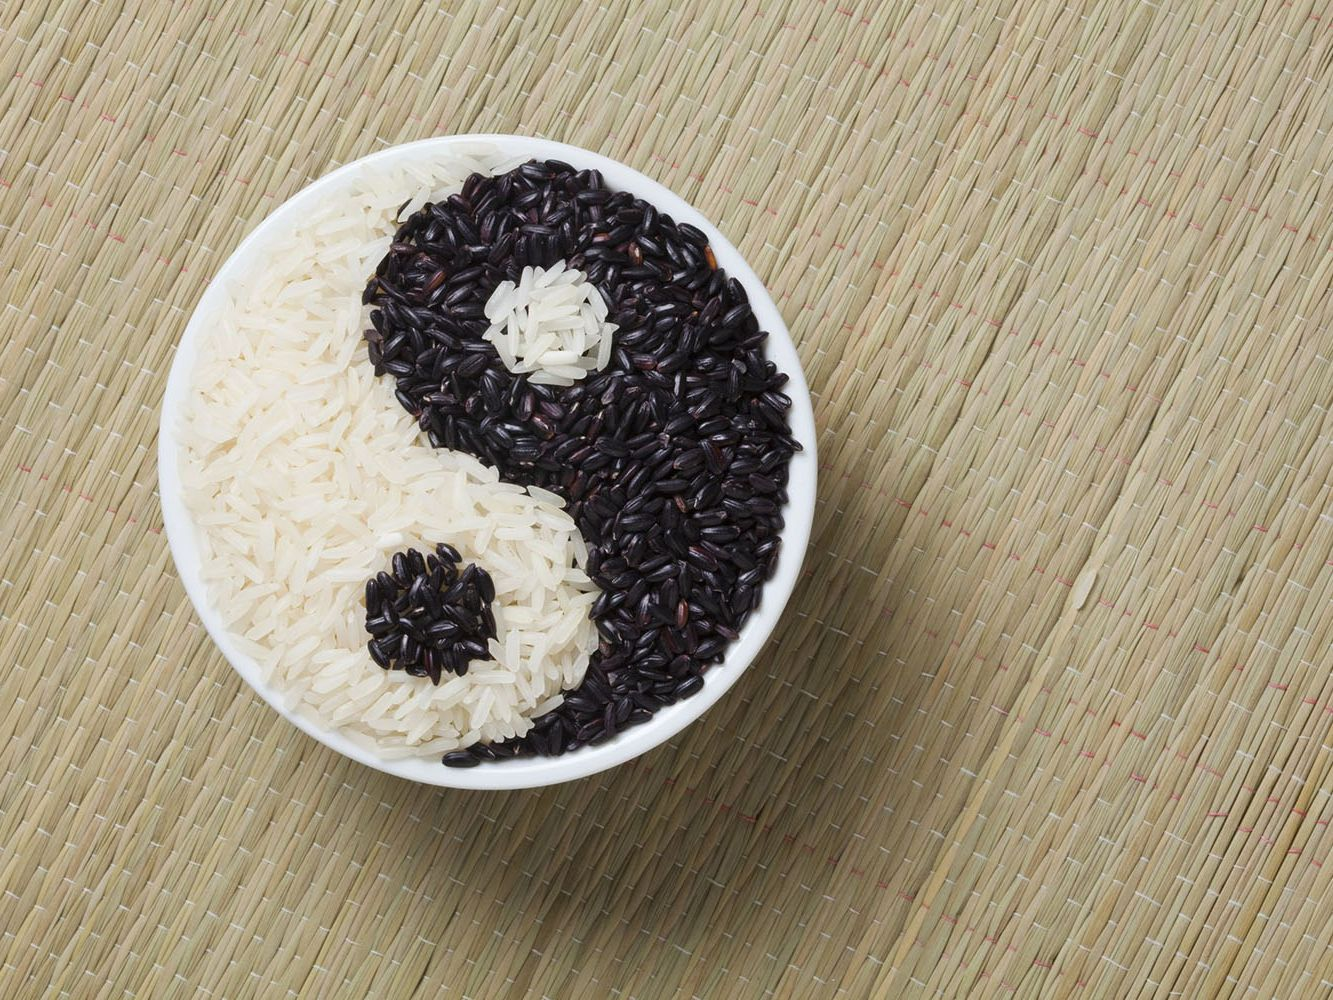 What Is the Meaning of Yin and Yang?